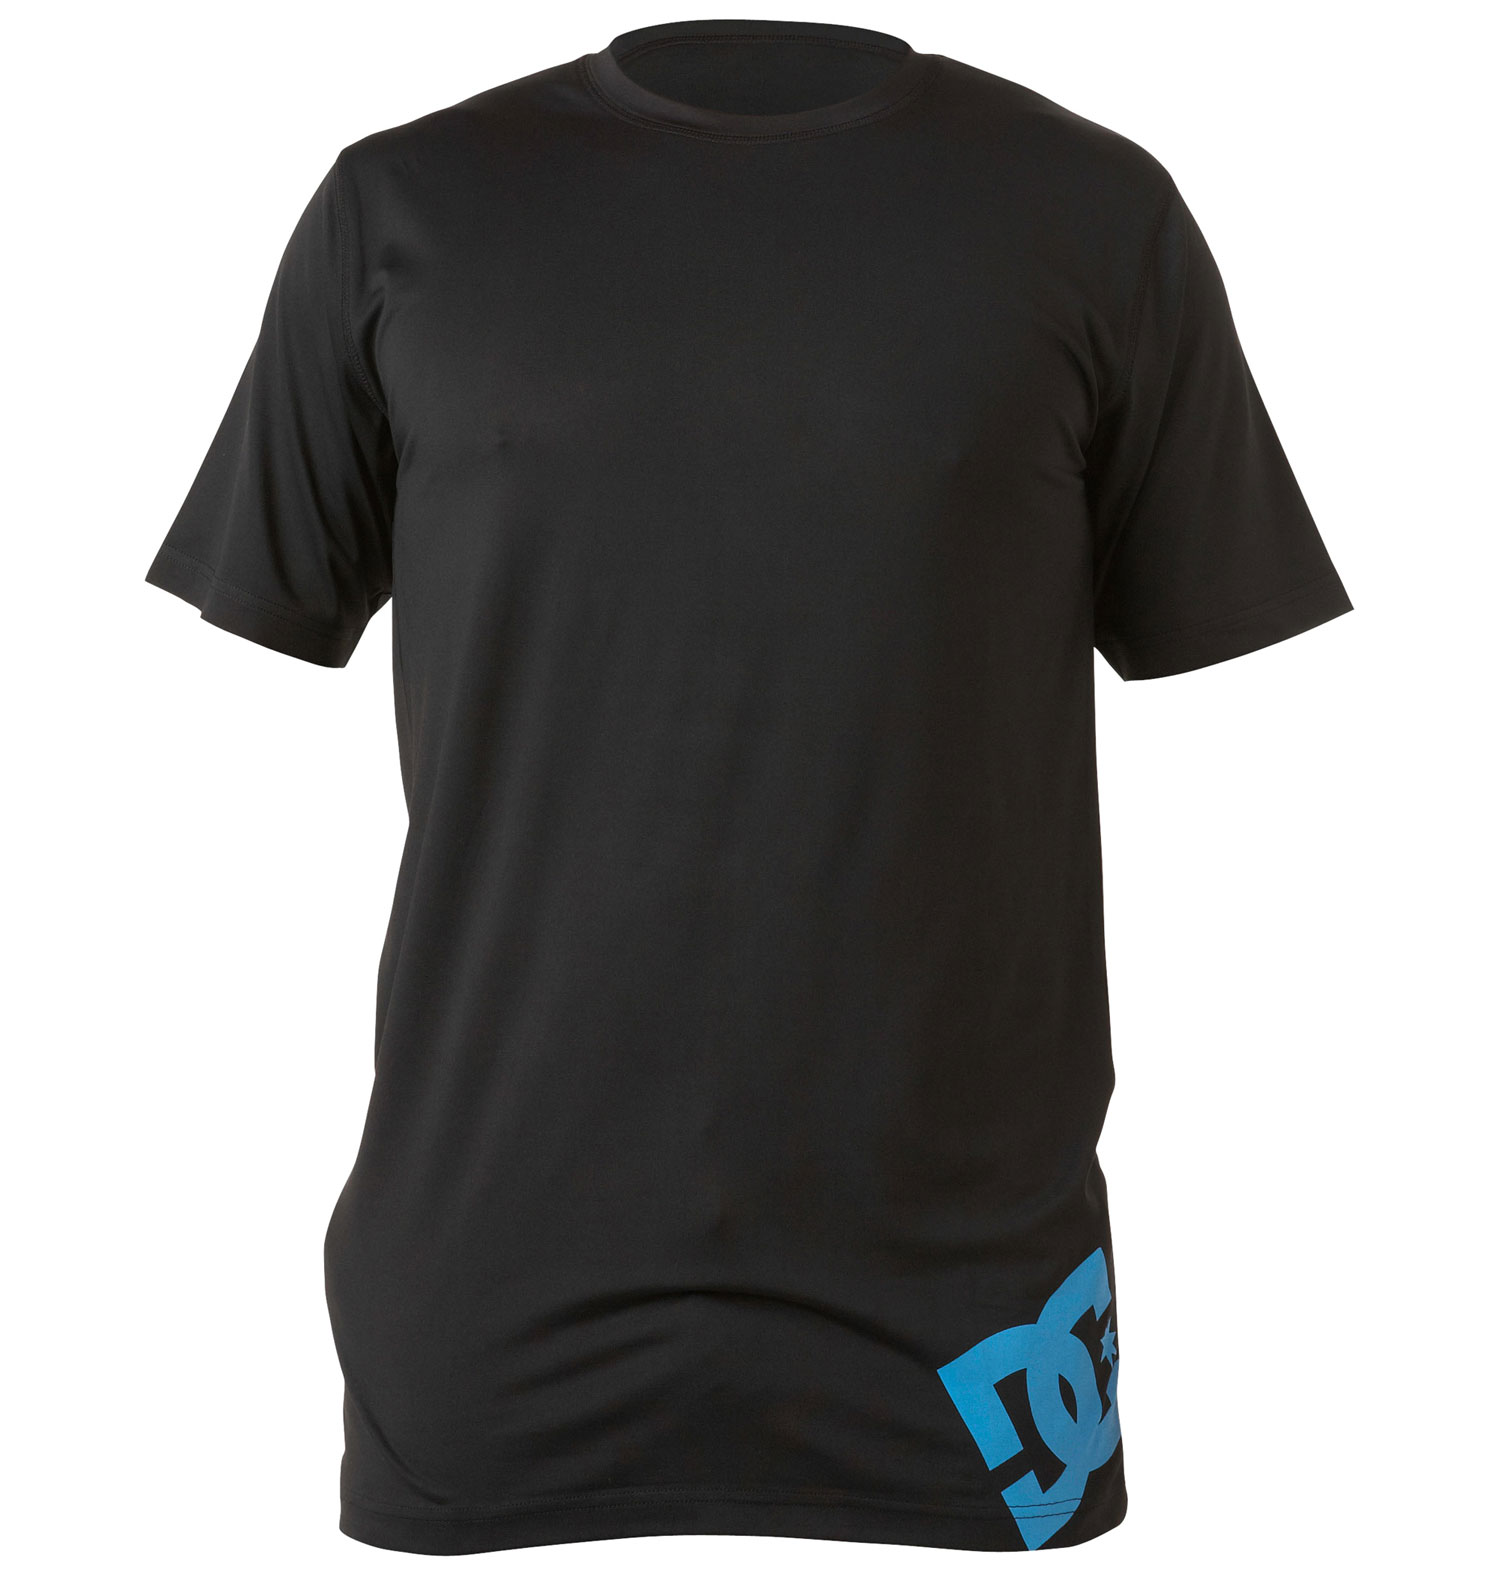 Short sleeve crew neck 1st layer shirt with moisture wicking properties and logo screen print at bottom side hem.Key Features of the DC Aravis Baselayer Top: Long fit 90% polyester / 10% spandex - $35.00